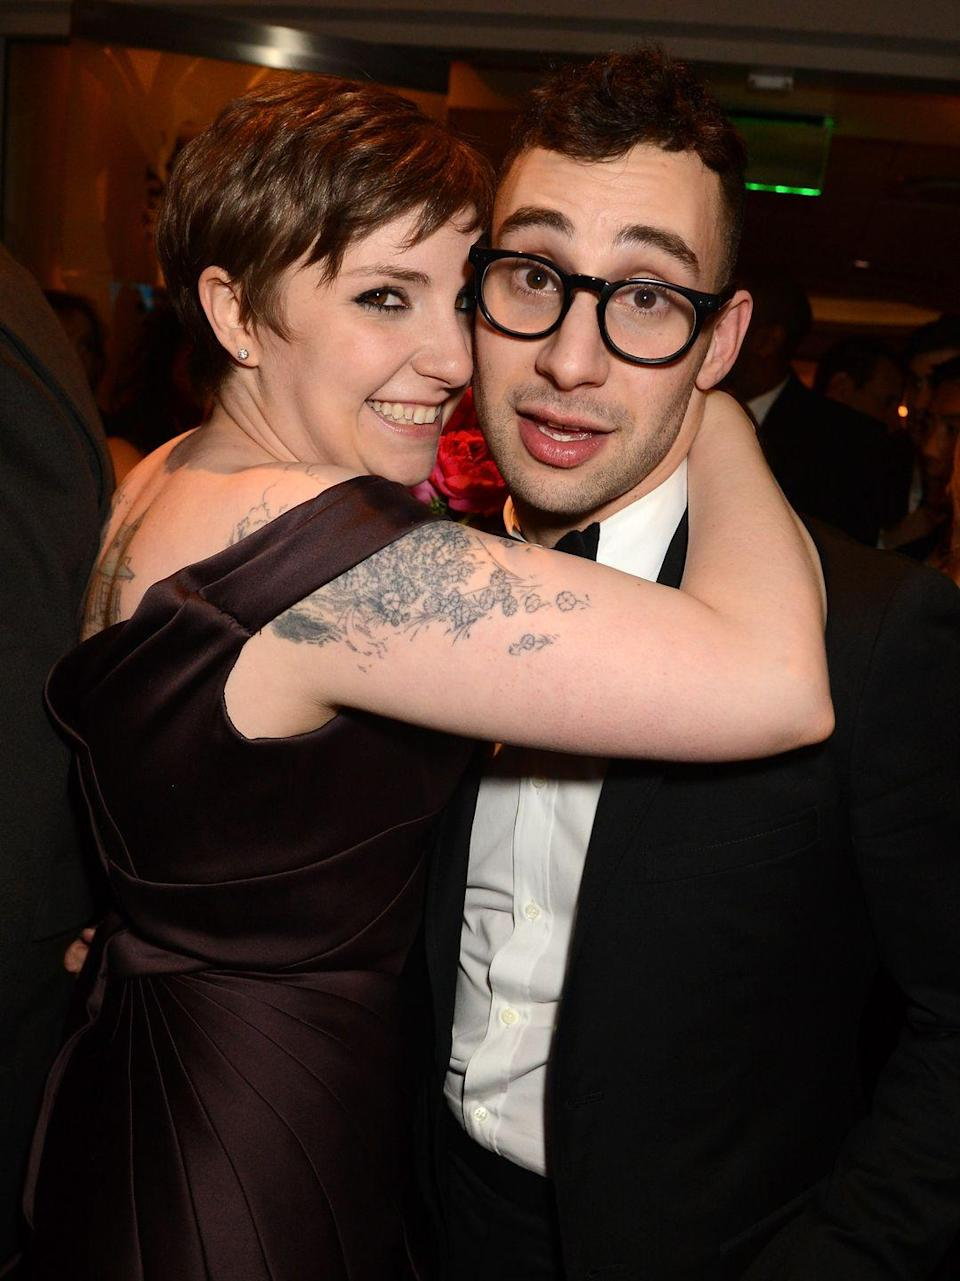 """<p>Jack Antonoff's sister, Rachel, and comedian Mike Birbiglia set the couple up. </p><p>""""It was a blind date by modern standards. I mean, I used the internet,"""" Antonoff explained to <a href=""""http://www.vulture.com/2014/06/jack-antonoff-solo-album-bleachers.html?mid=nymag_press"""" rel=""""nofollow noopener"""" target=""""_blank"""" data-ylk=""""slk:Vulture"""" class=""""link rapid-noclick-resp"""">Vulture</a>. """"[On the date] I told Lena everything about my whole life, because when you really like someone, you want them to know everything about you."""" The pair split in early 2018 after five years together.</p>"""